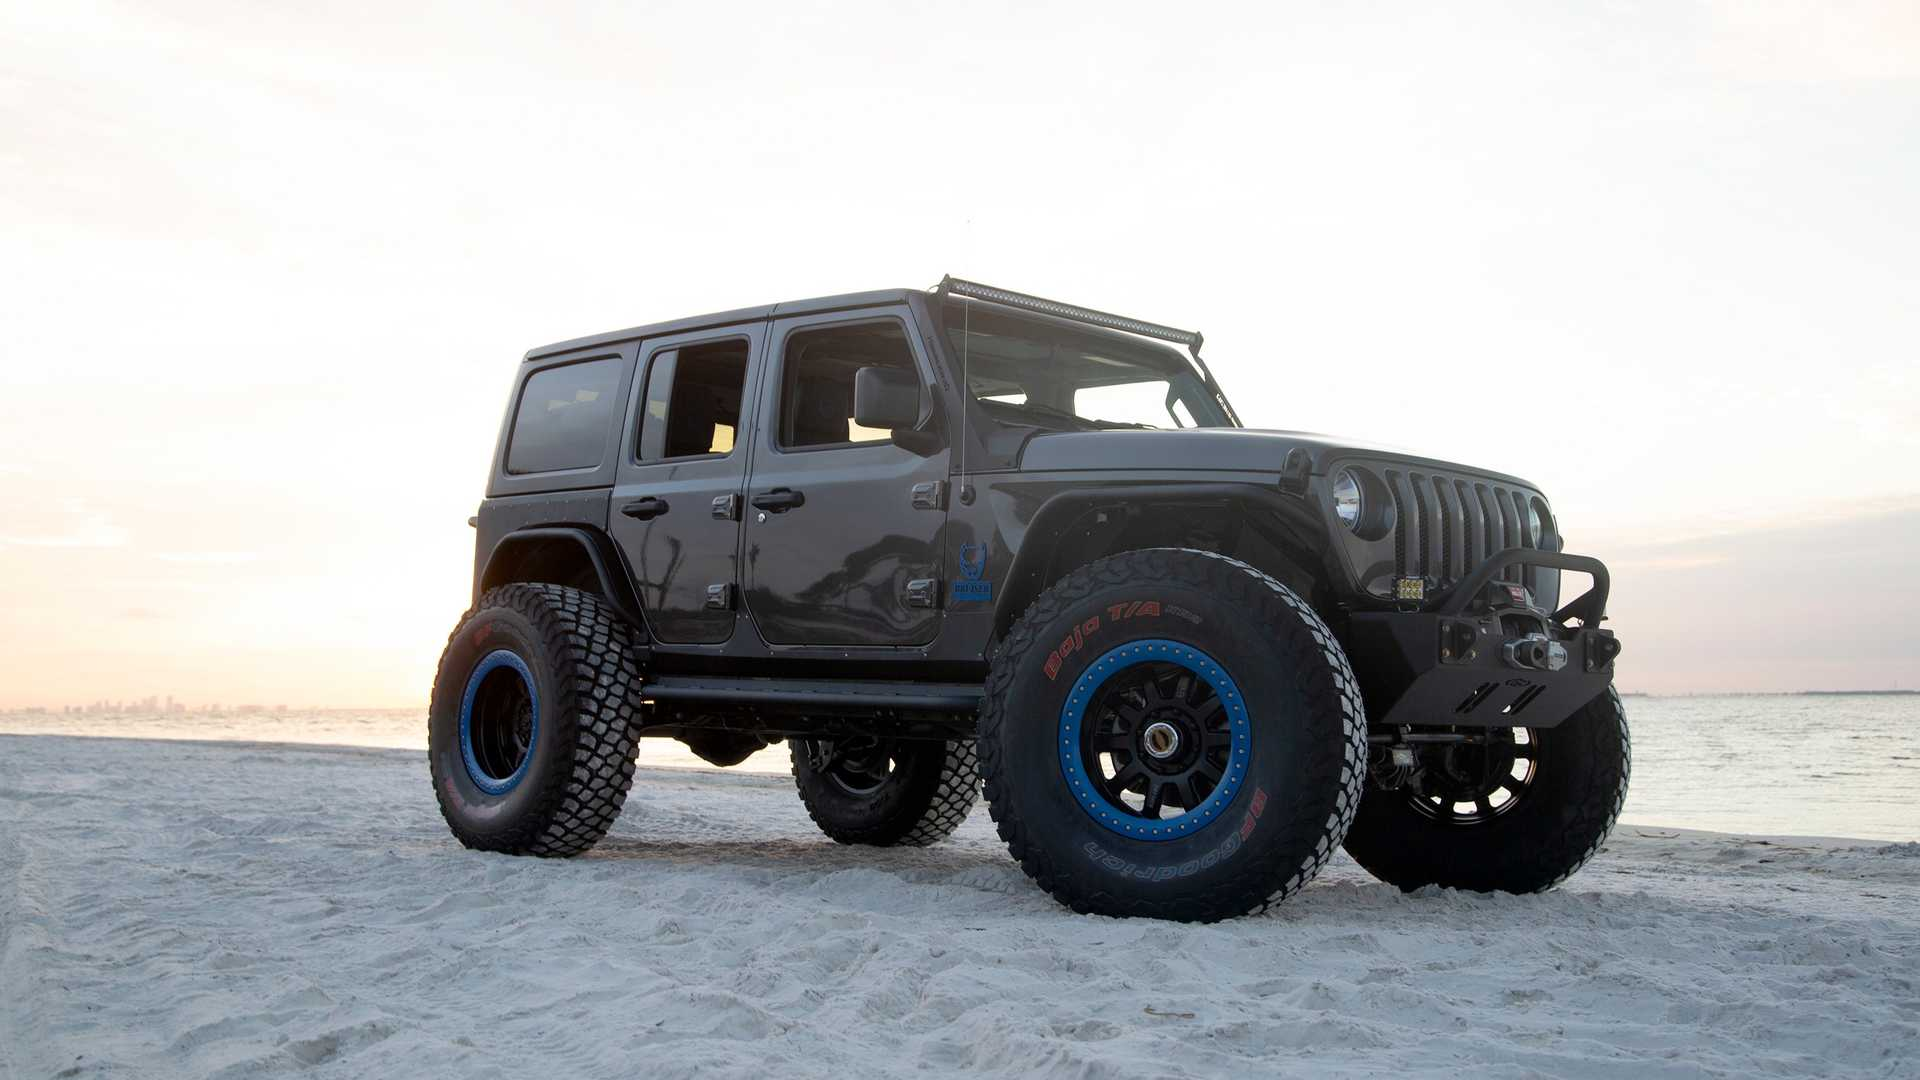 Donate To Charity And You Could Win This 450-HP Jeep Wrangler